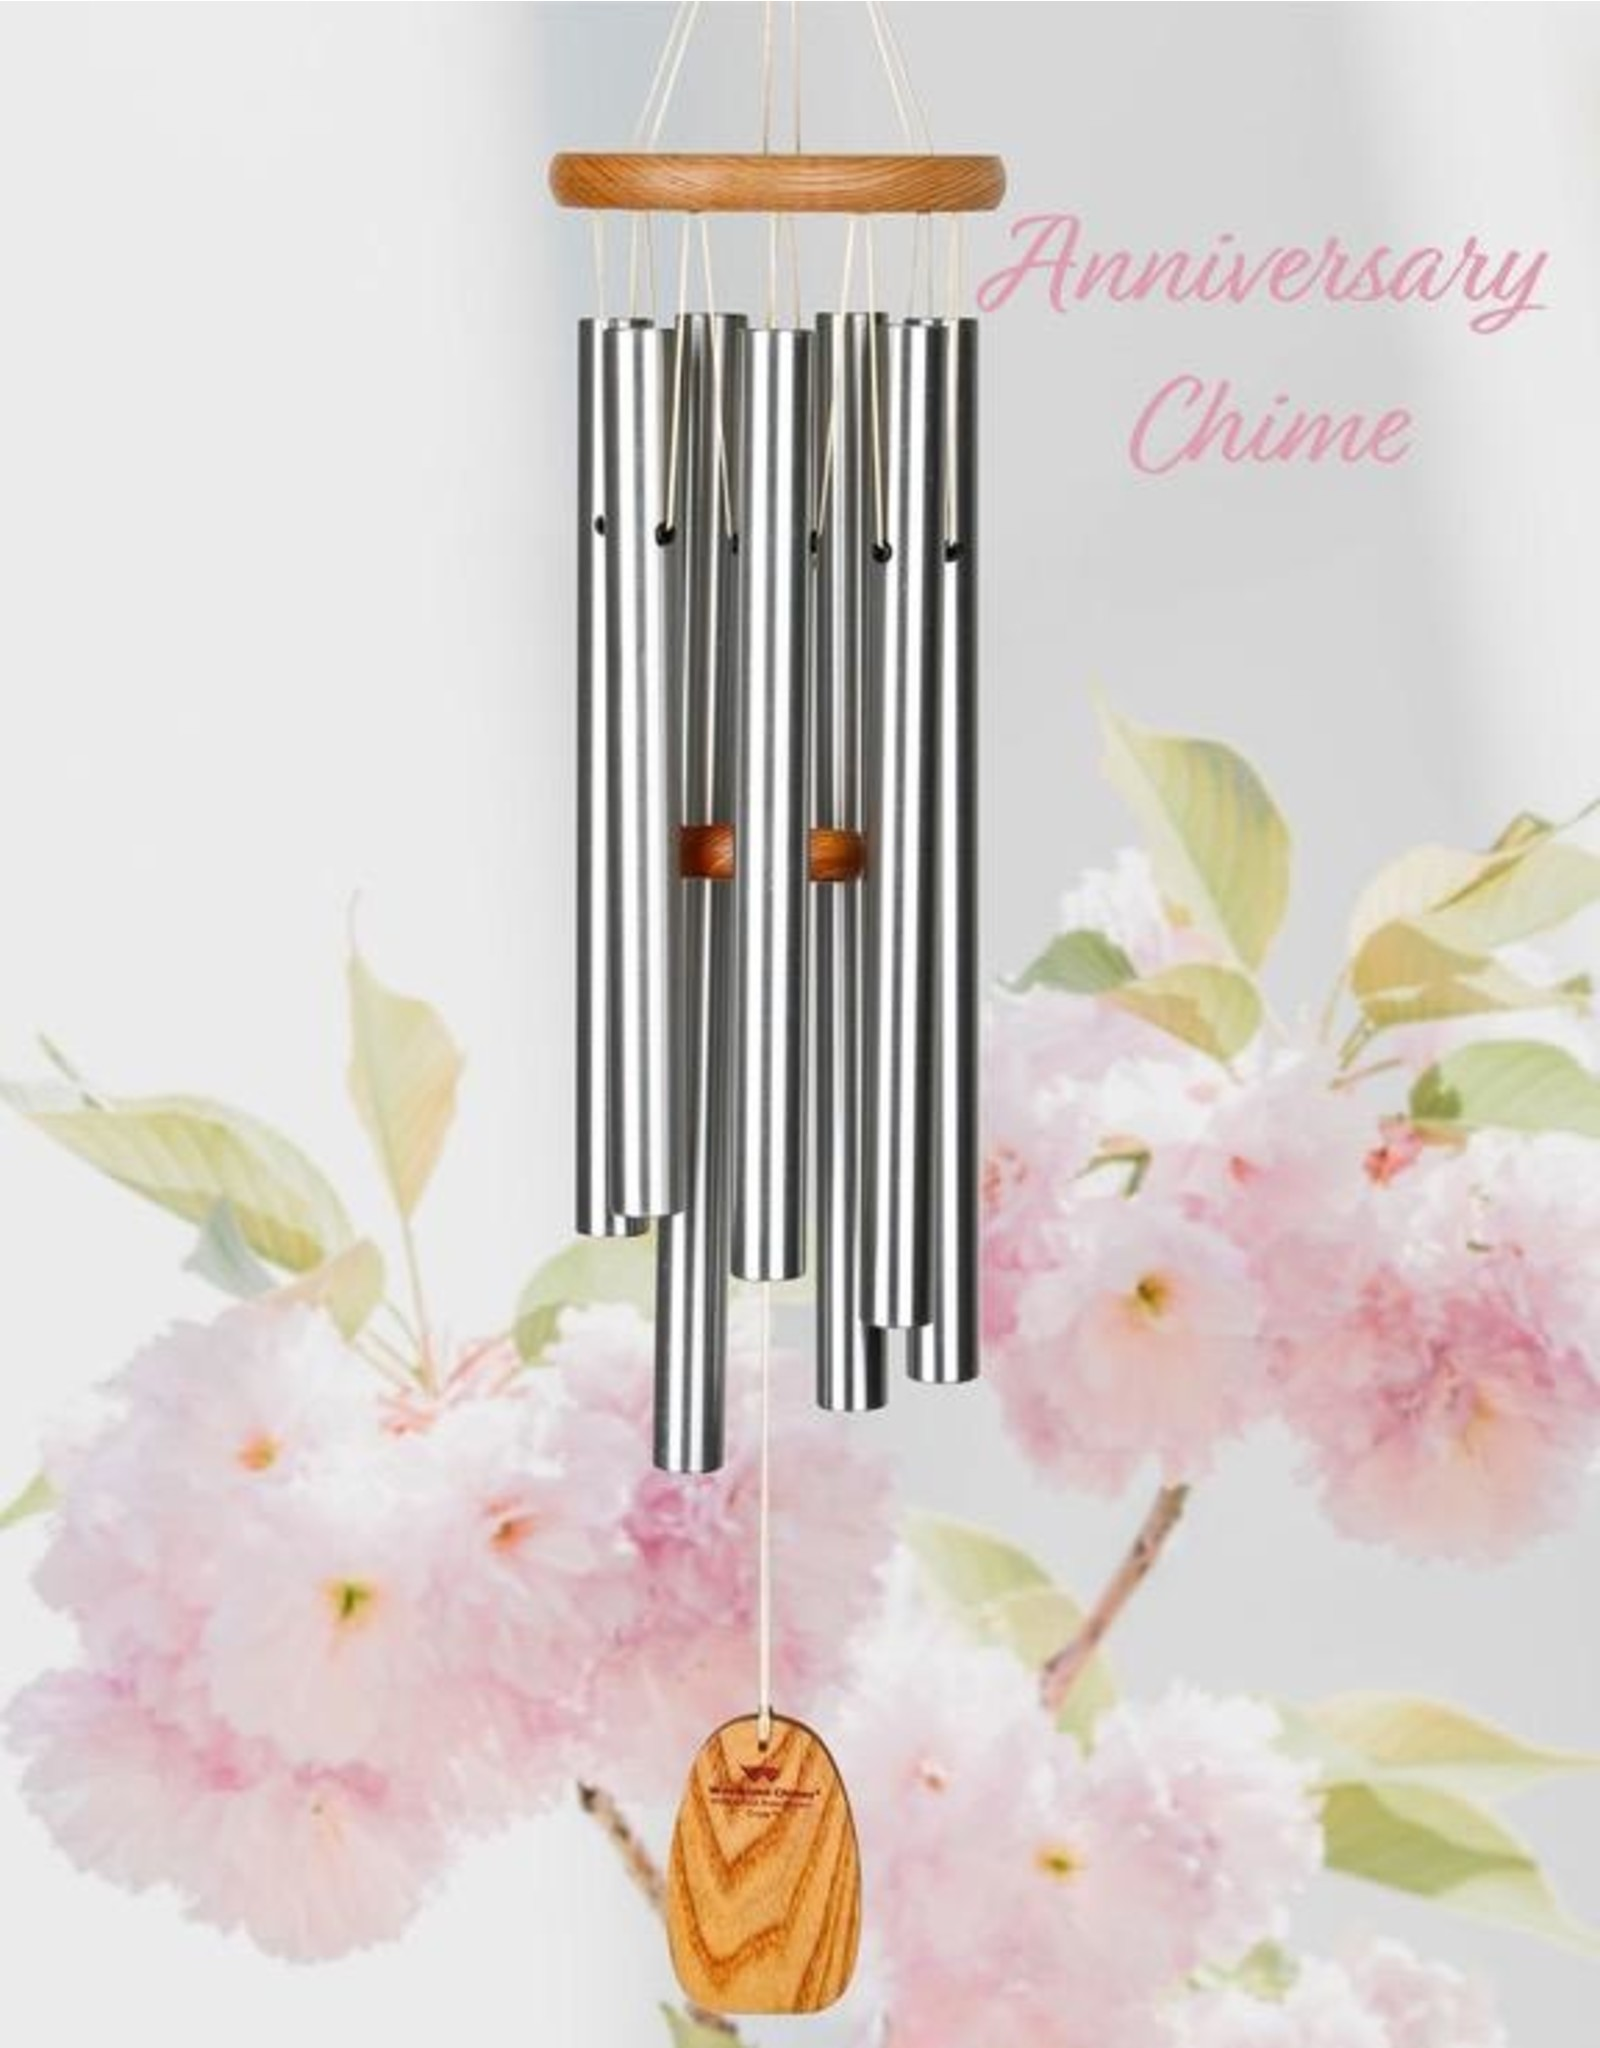 Woodstock Percussion Anniversary Chime